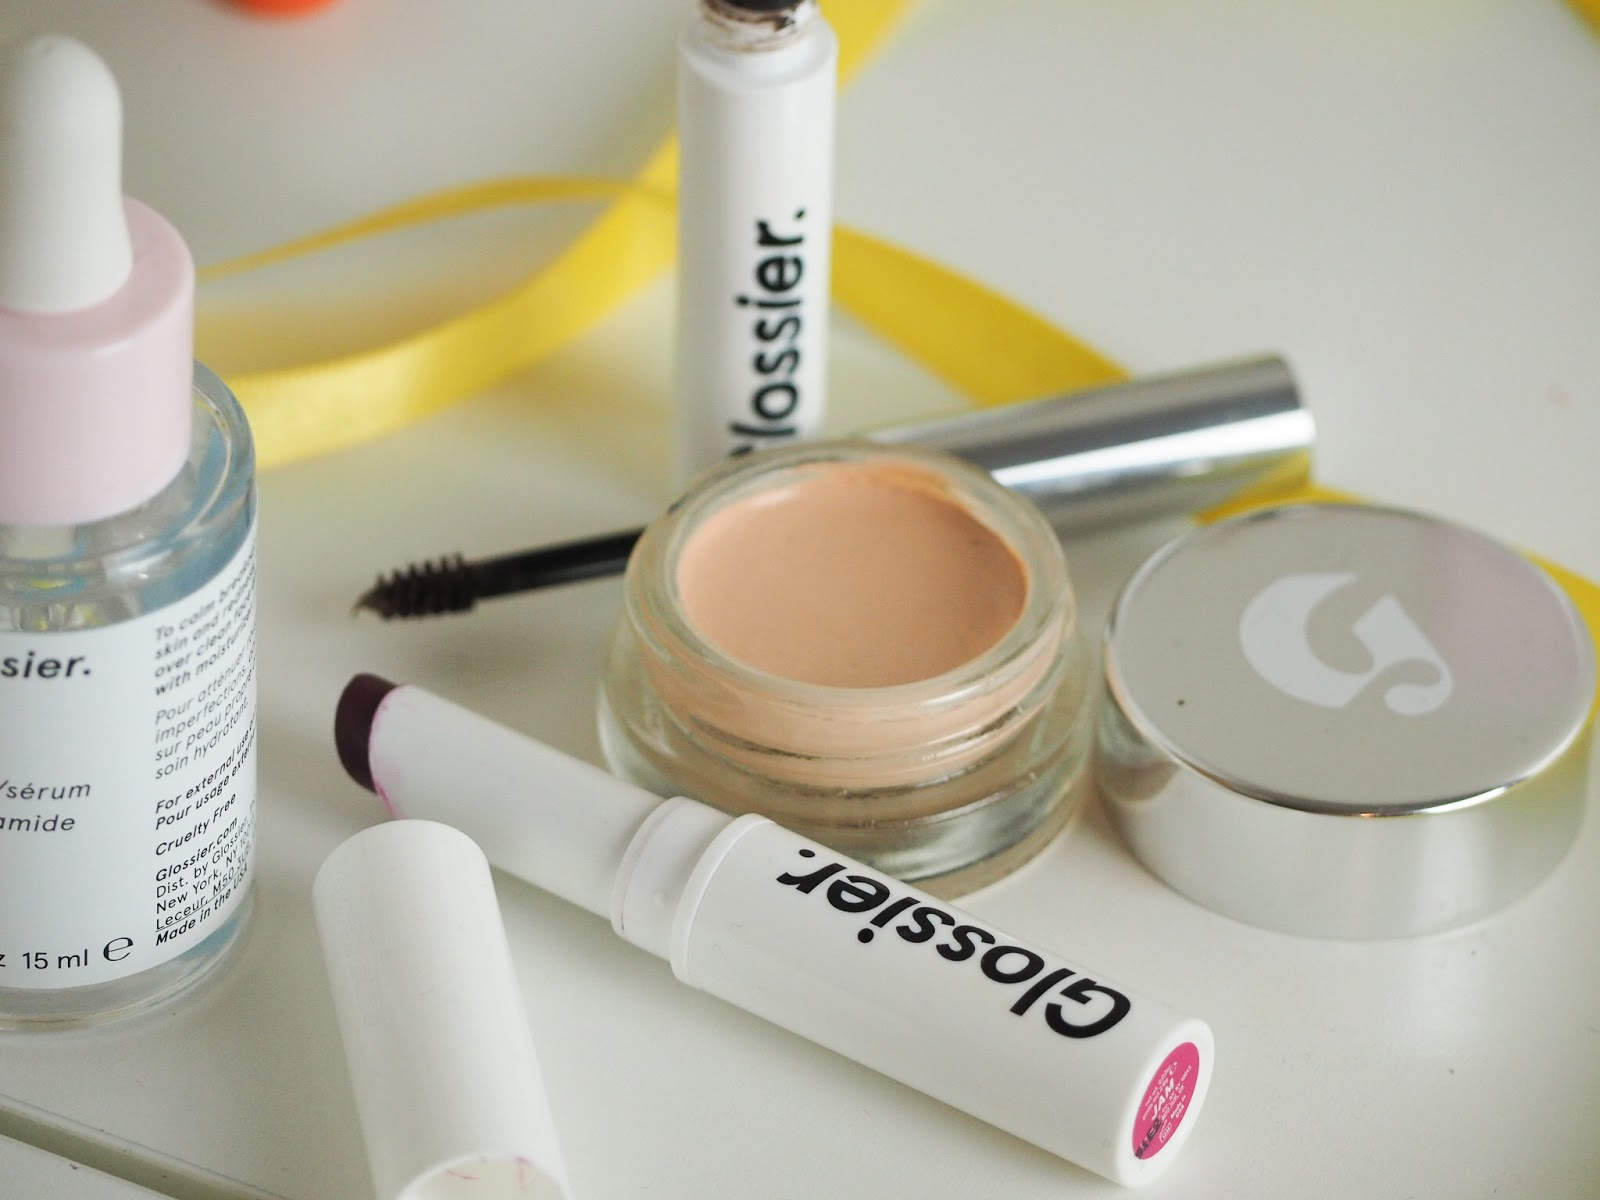 Glossier: A Second Chance (Phase 2 + Super Pure Review)